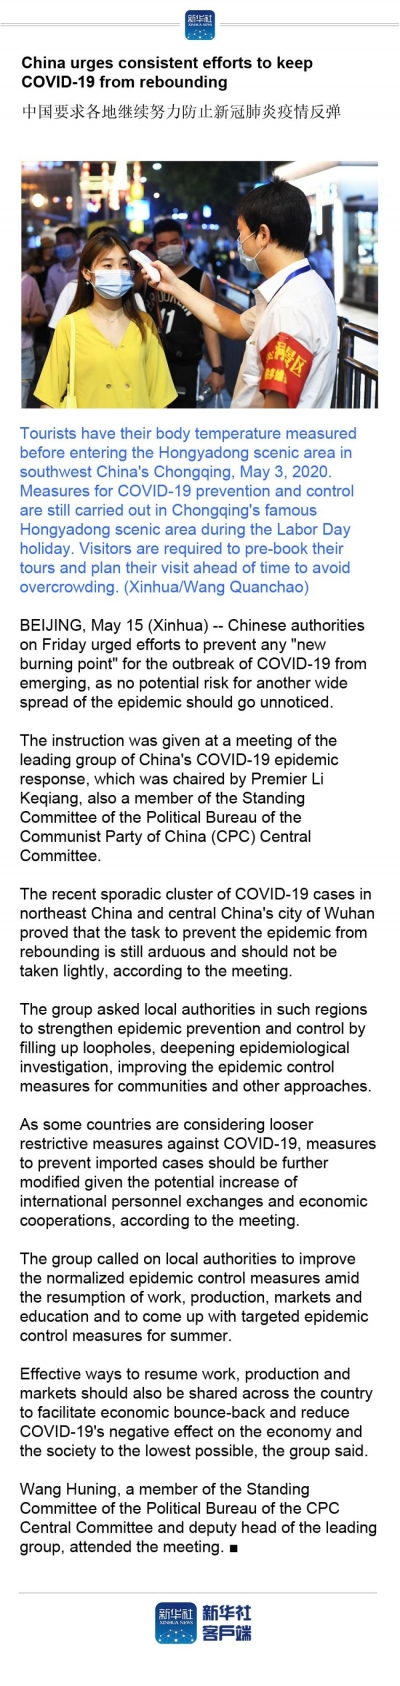 China urges consistent efforts to keep COVID-19 from rebounding